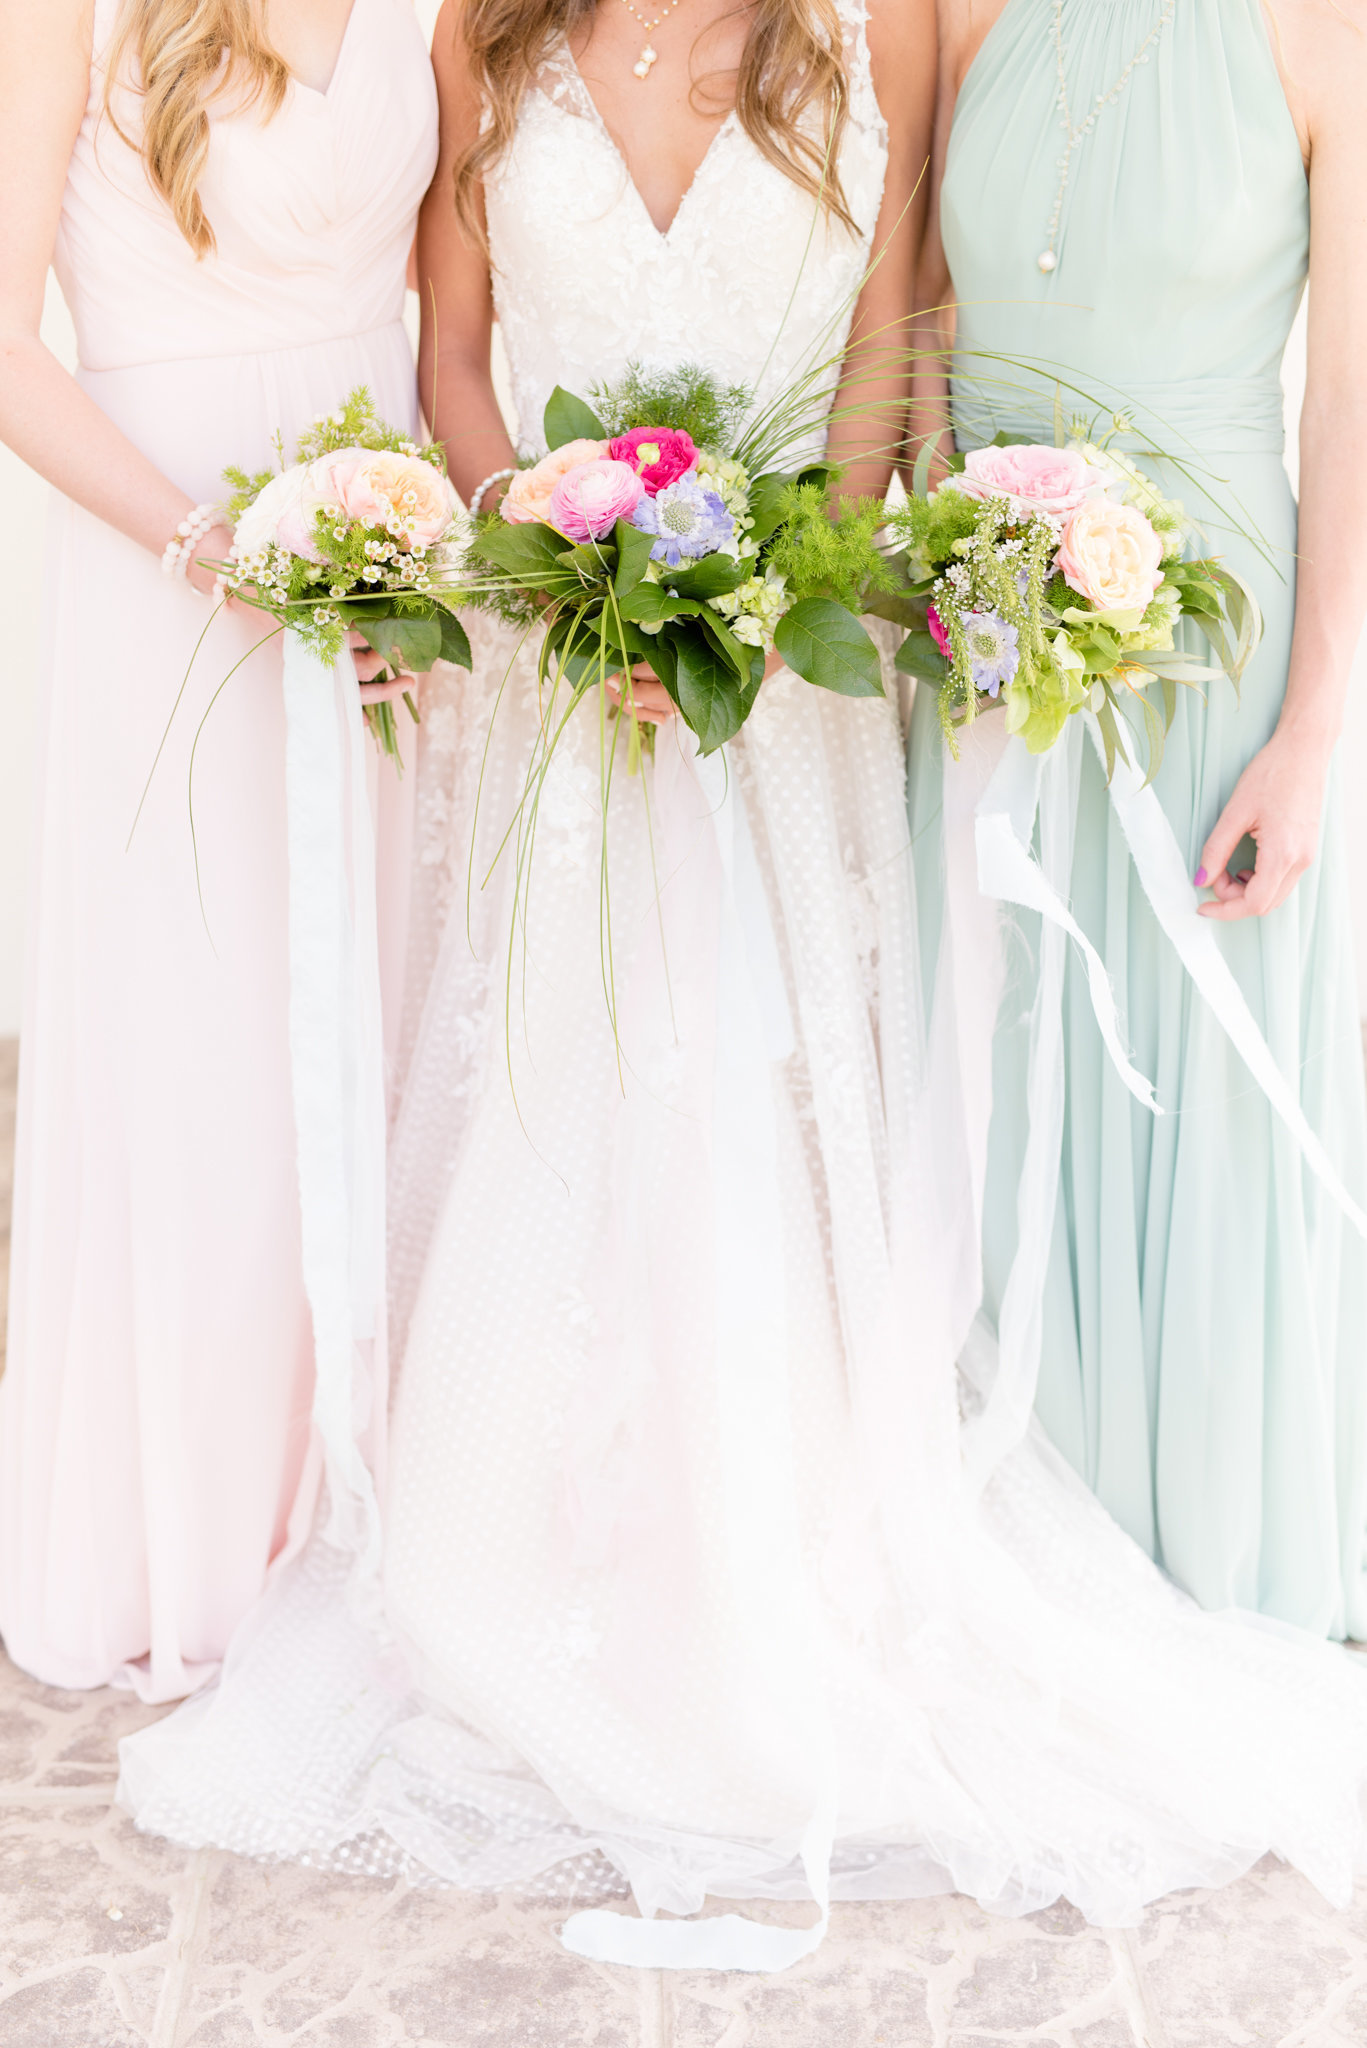 Tampa bride and bridesmaids hold bouquets.